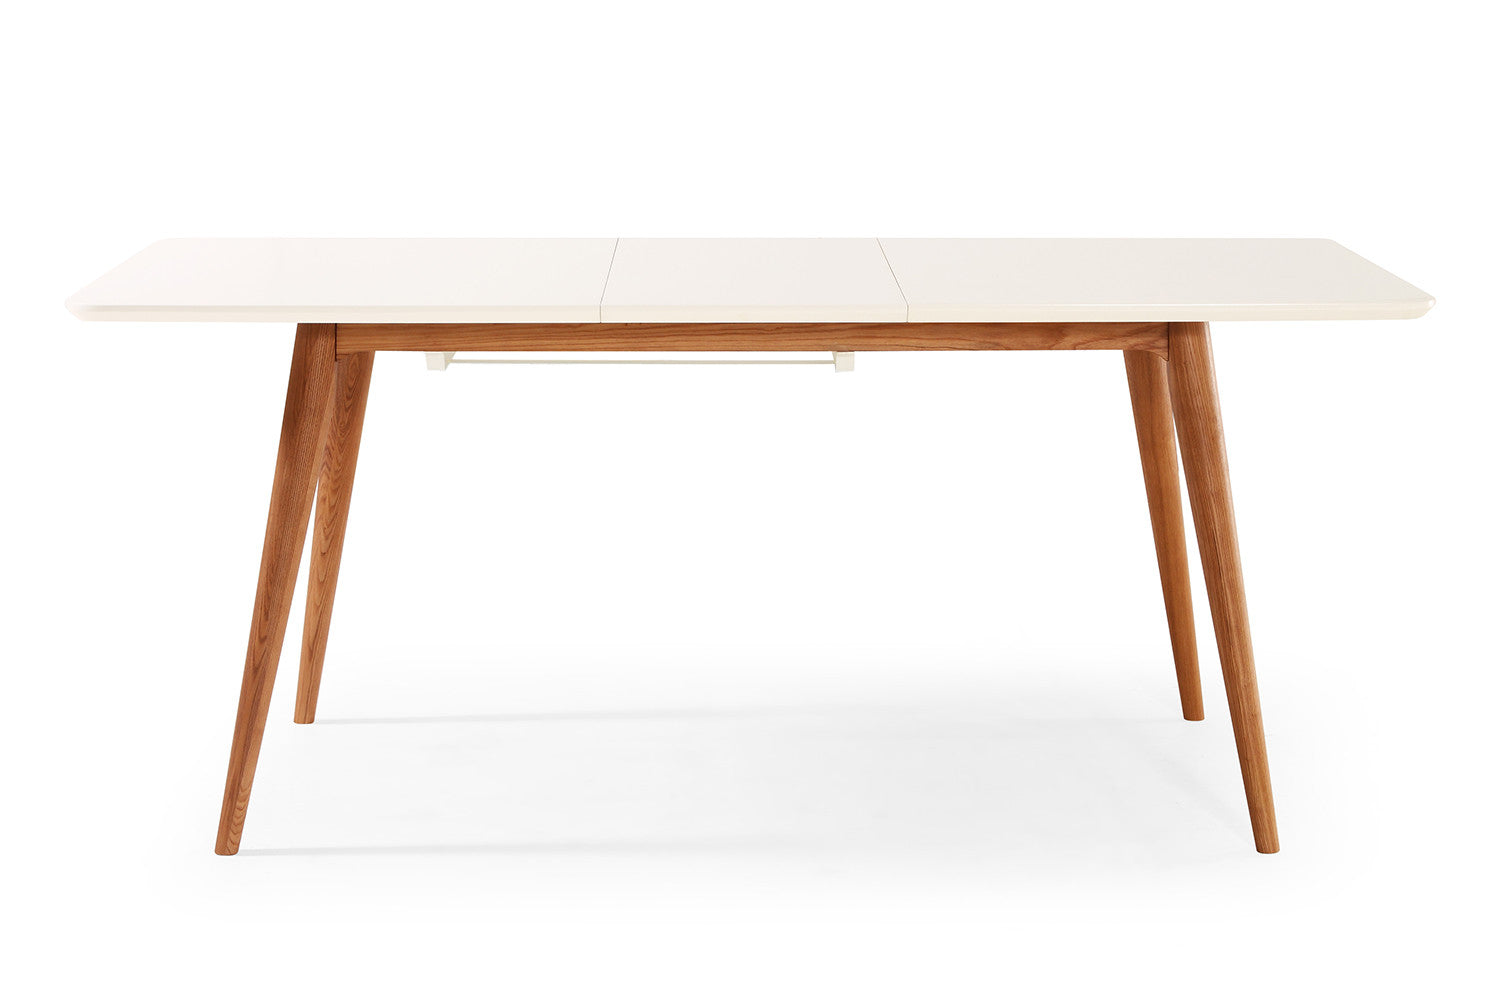 Table de salle manger extensible scandinave wyna dewarens for Table a rallonge scandinave